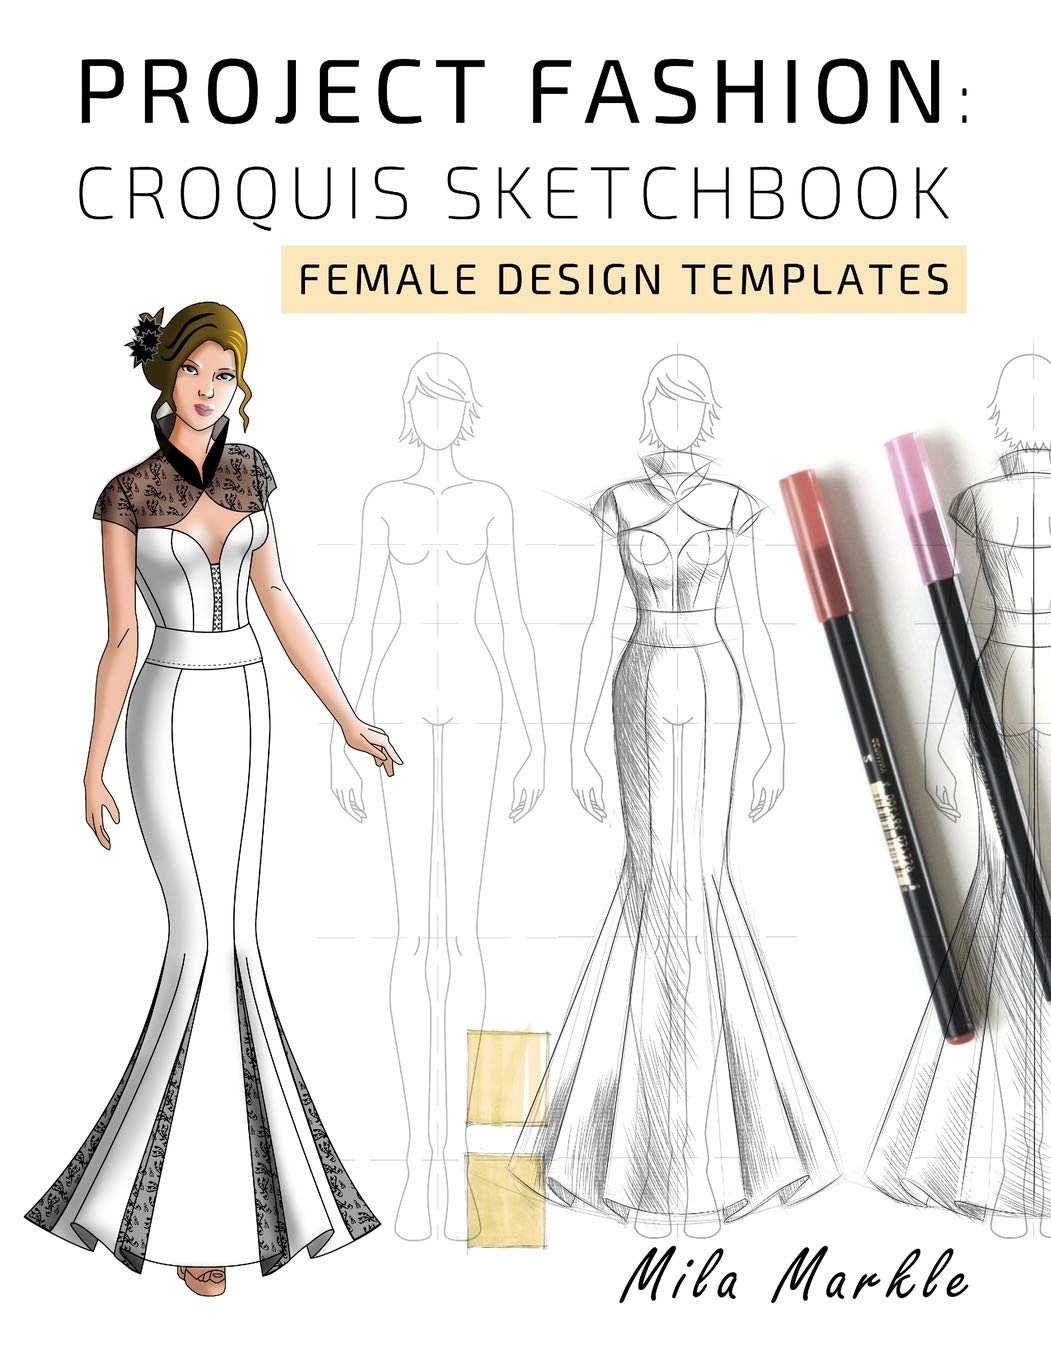 Project Fashion Croquis Sketchbook Female Design Templates Designing Clothes Illustration Technical Drawing Markle Mila 9781090615848 Amazon Com Books